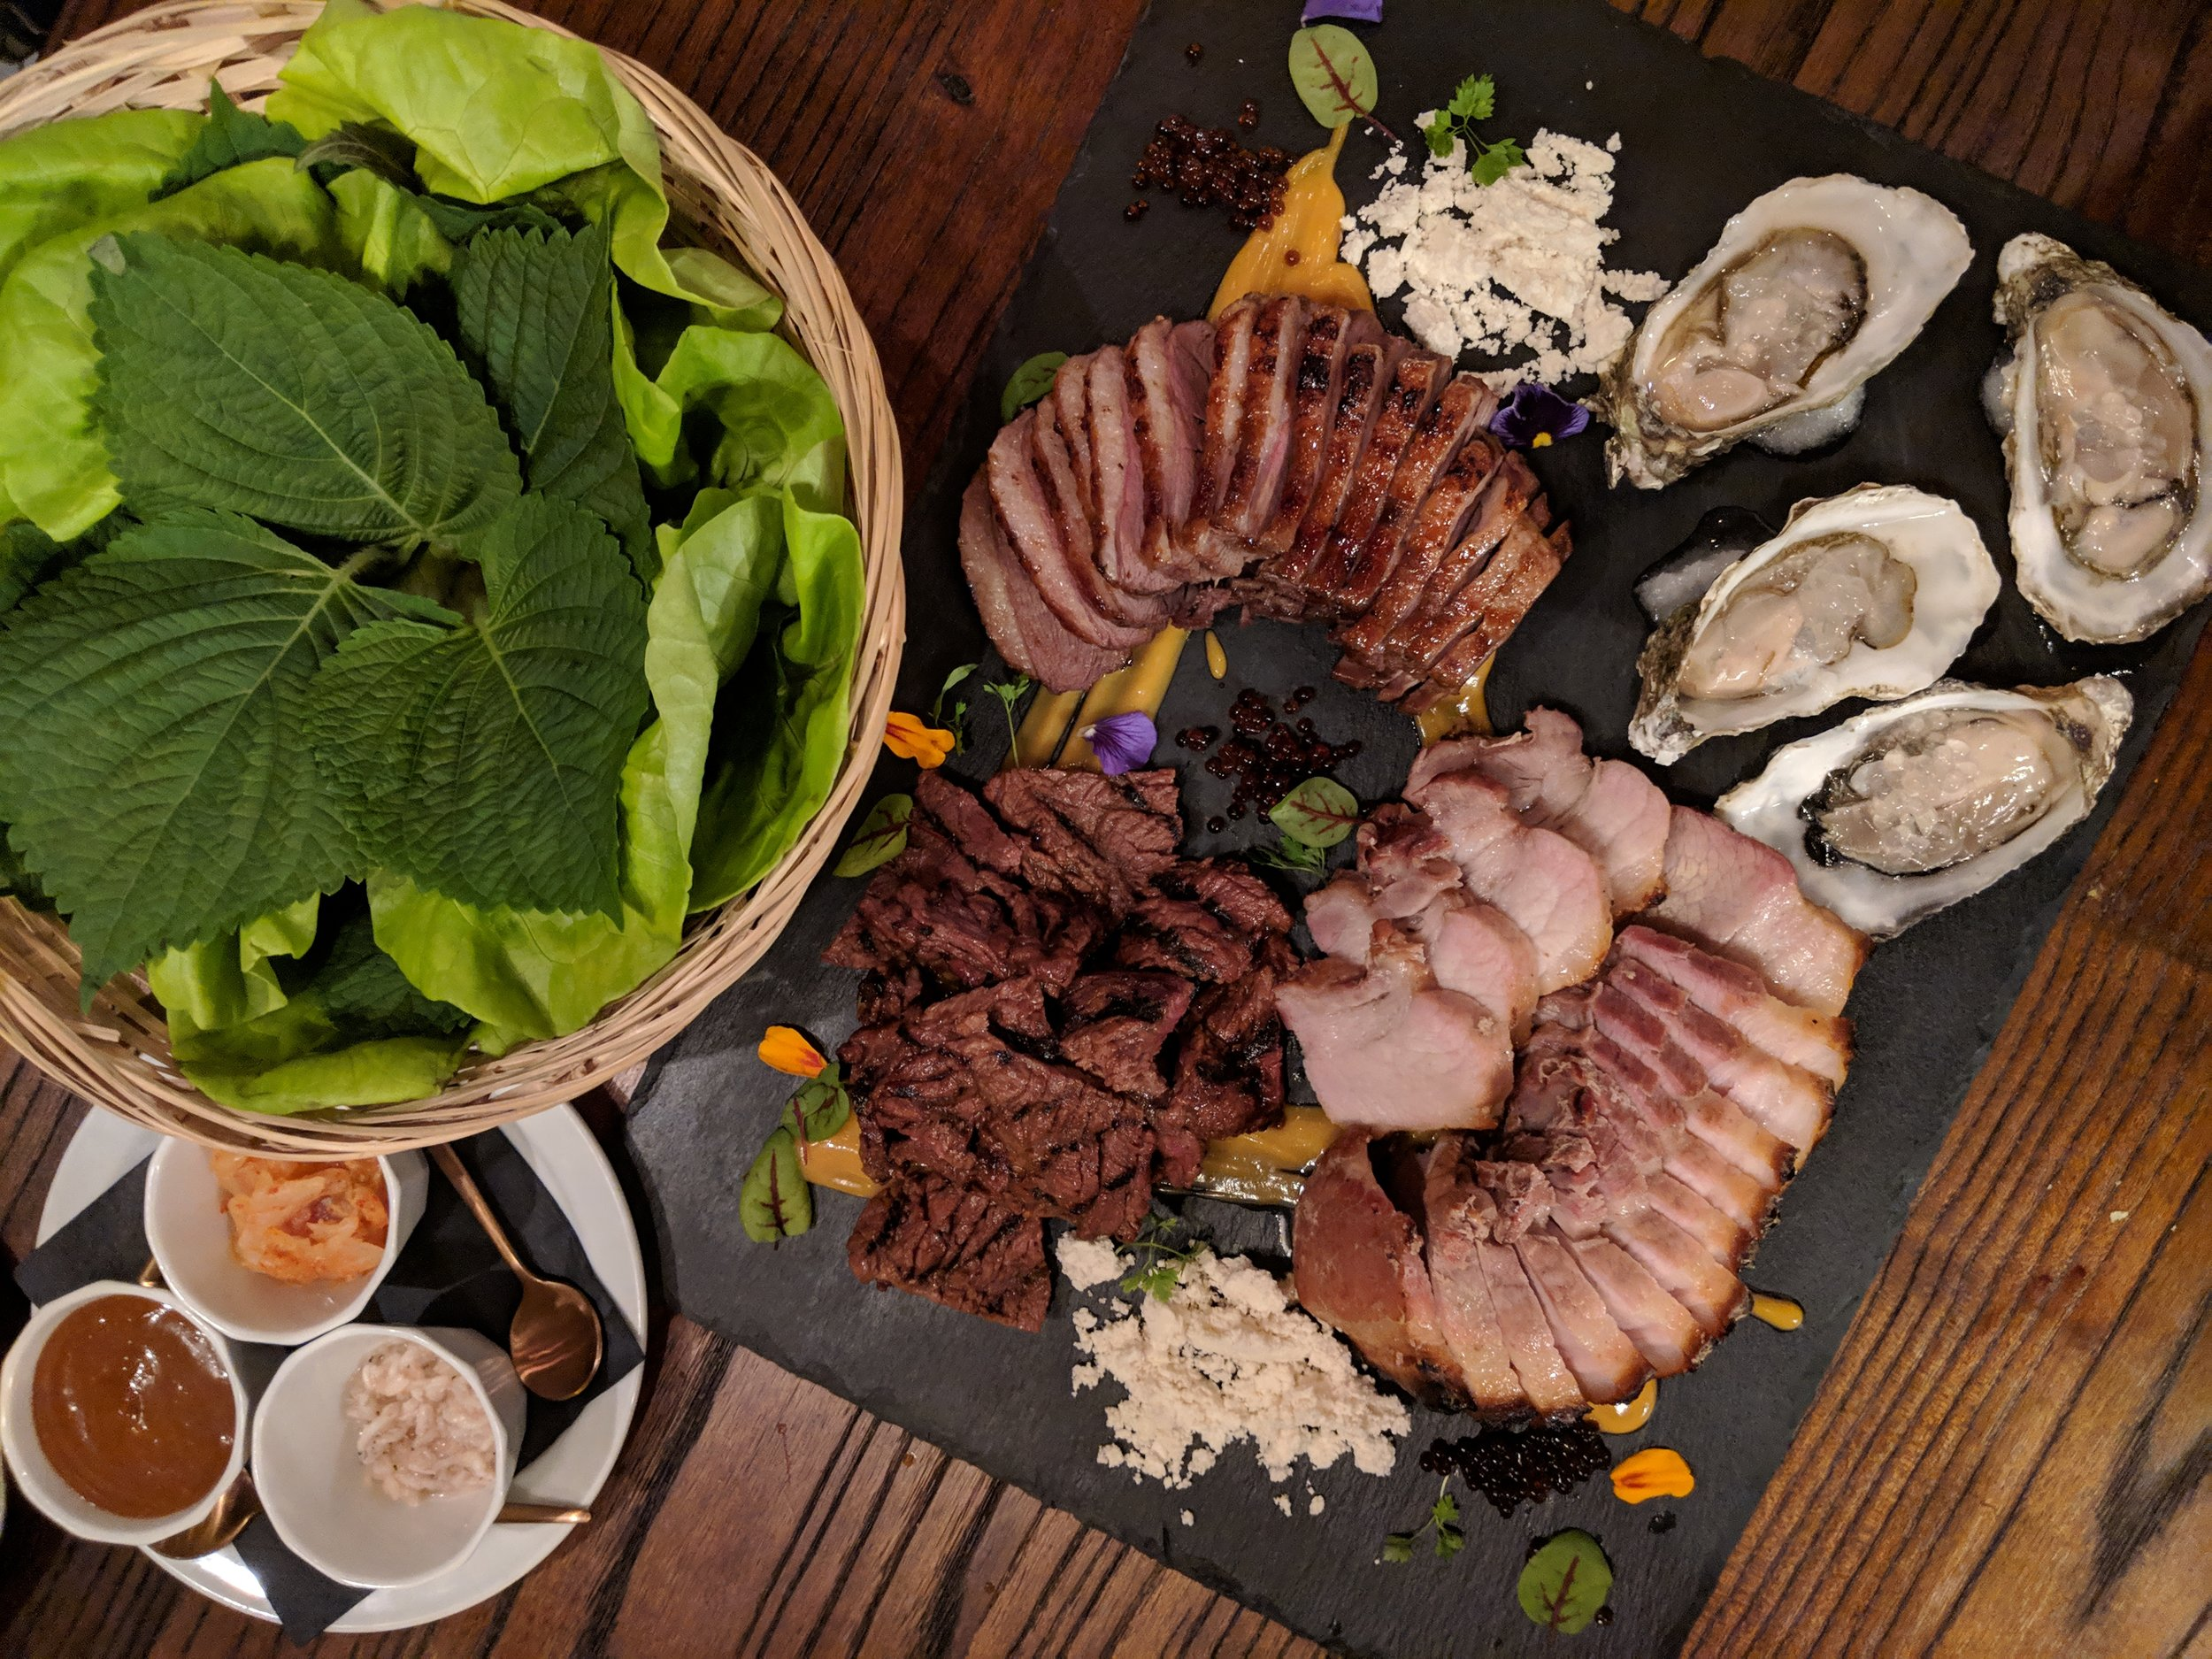 Aniq's SSAM Platter with Duck Breast, Pork Belly, Kalbi, Oysters